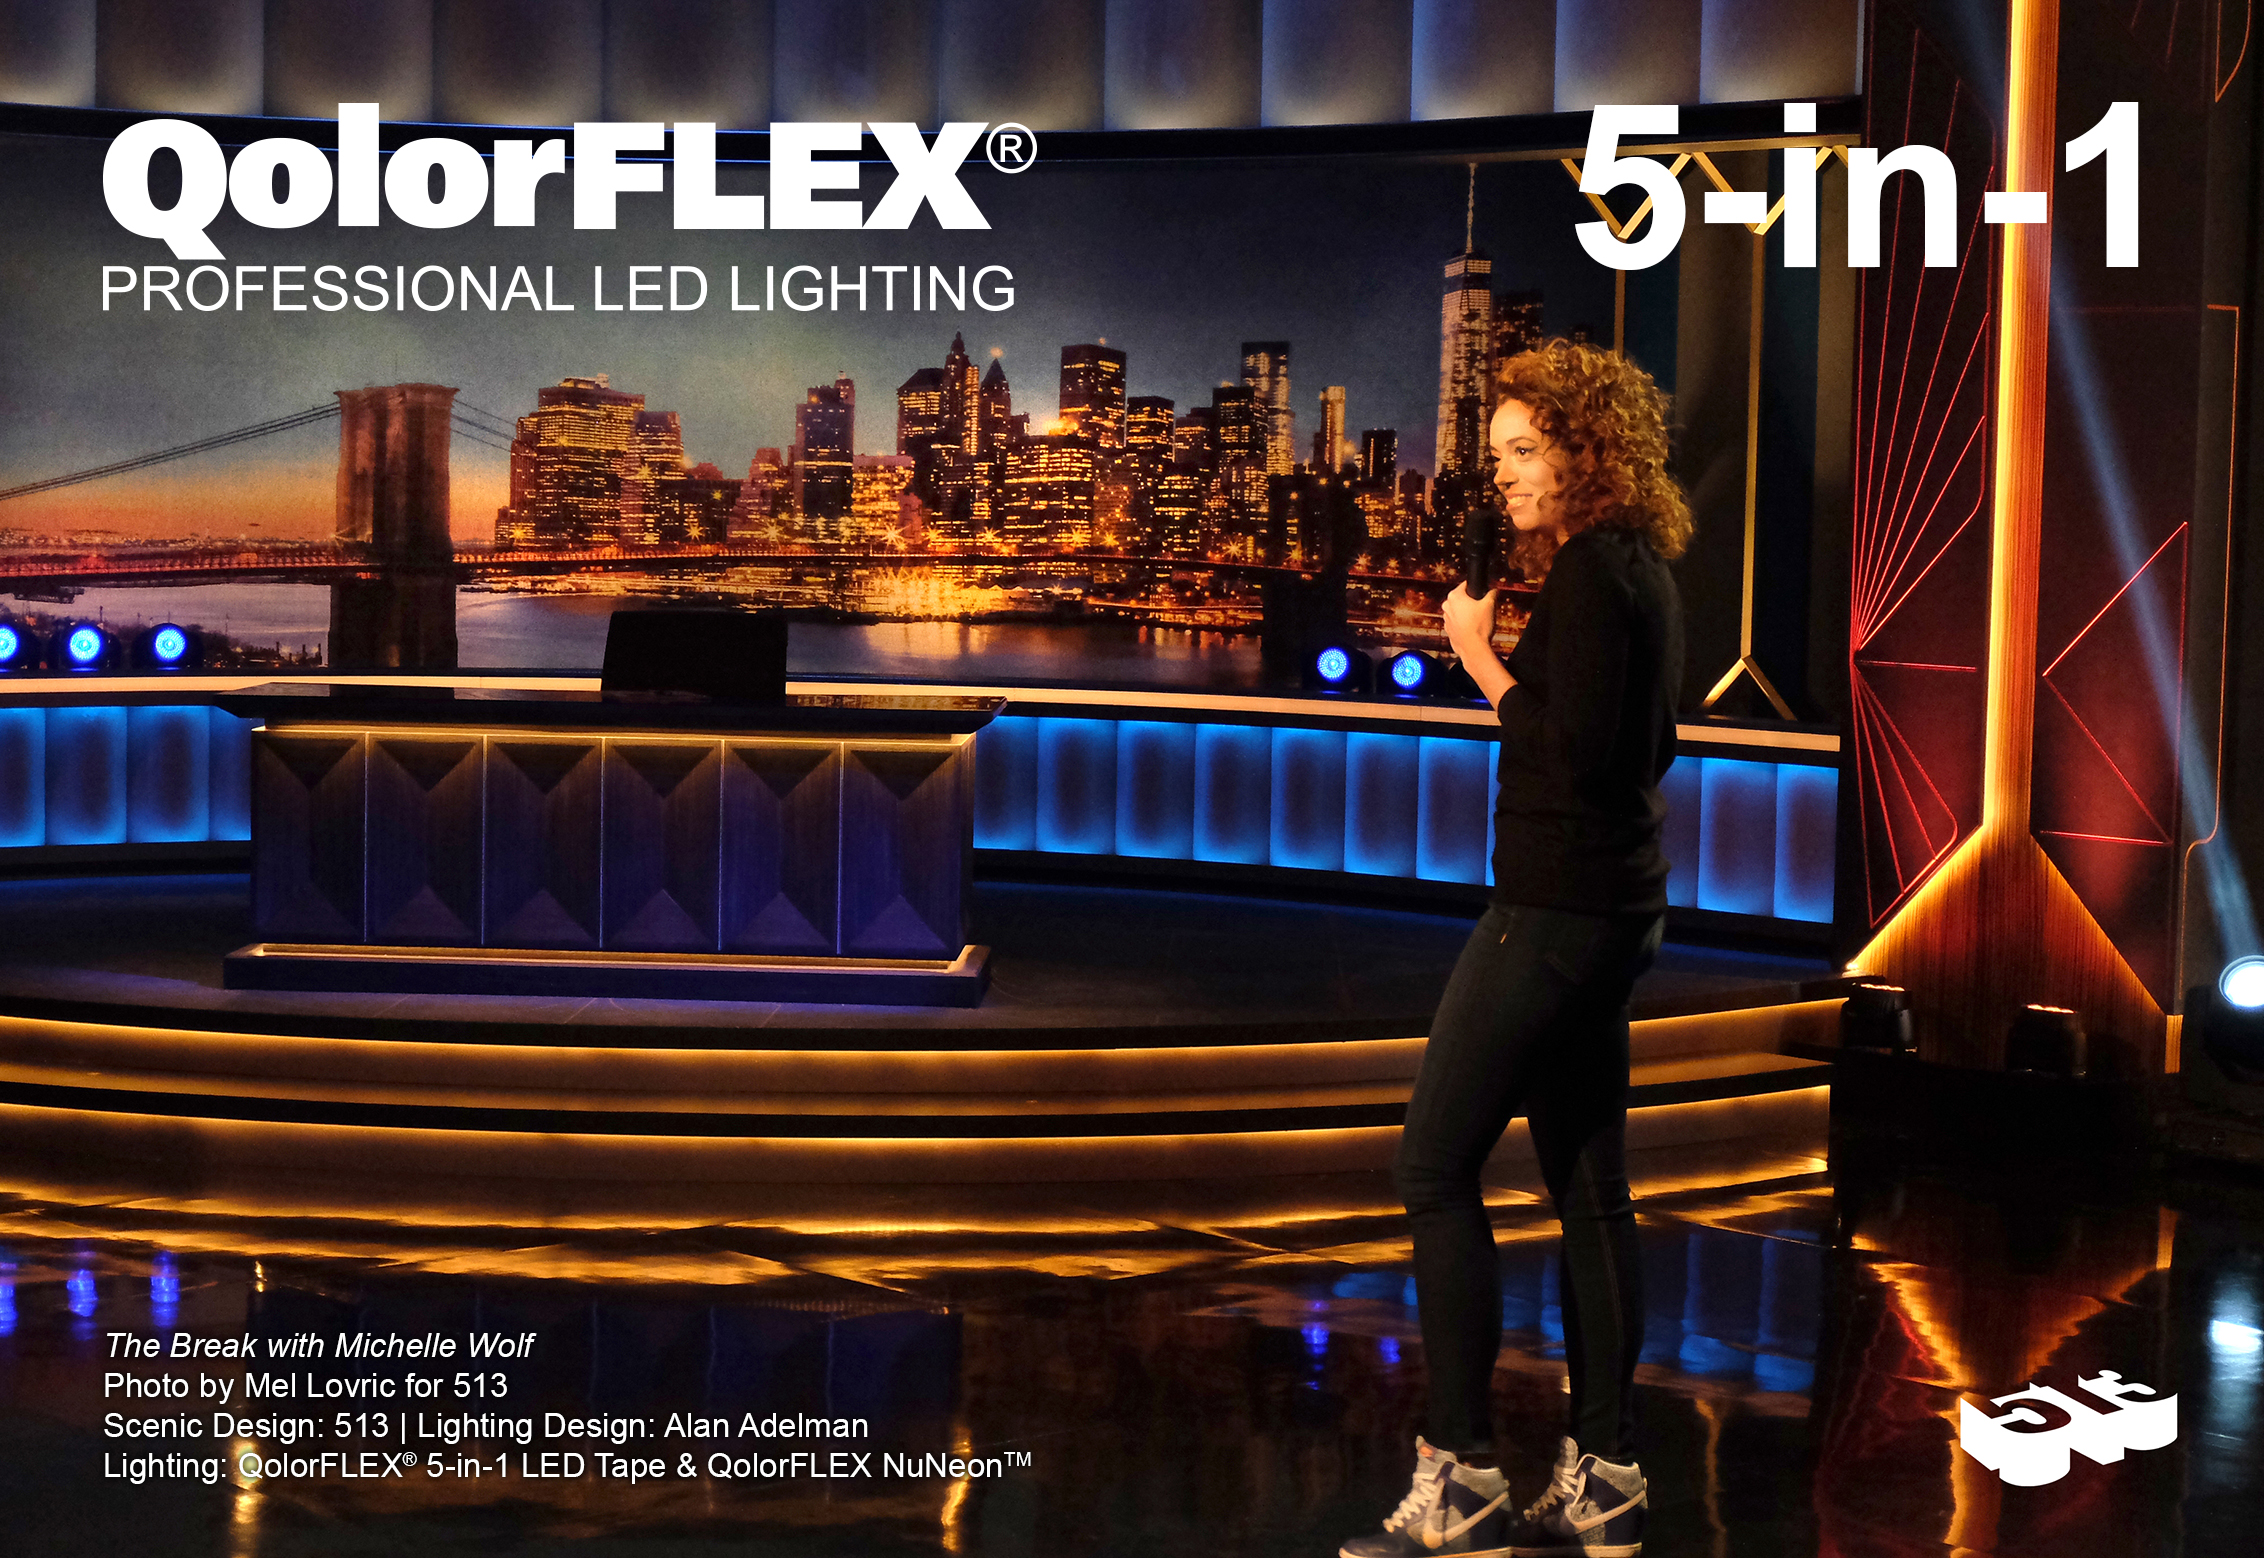 QolorFLEX 5-in-1 LED Tape on The Break with Michelle Wolf, Monologue